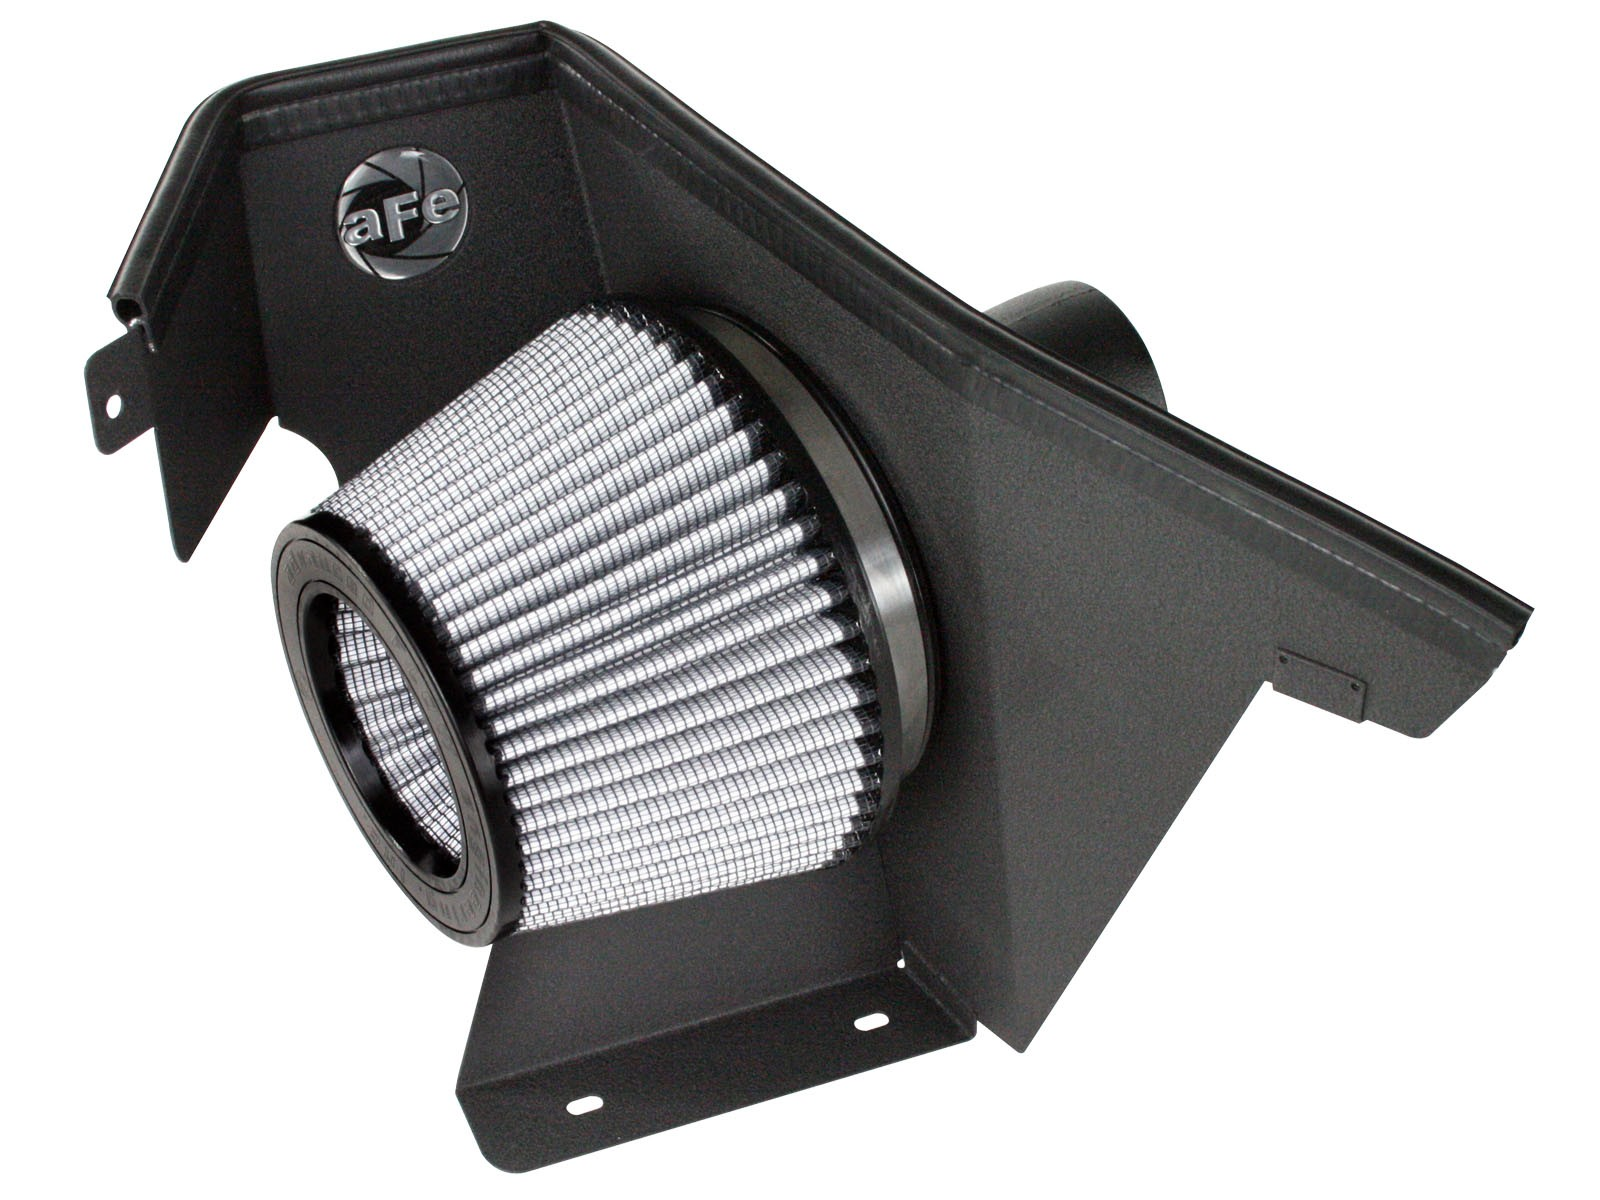 aFe POWER 51-11572 Magnum FORCE Stage-2 Pro DRY S Cold Air Intake System